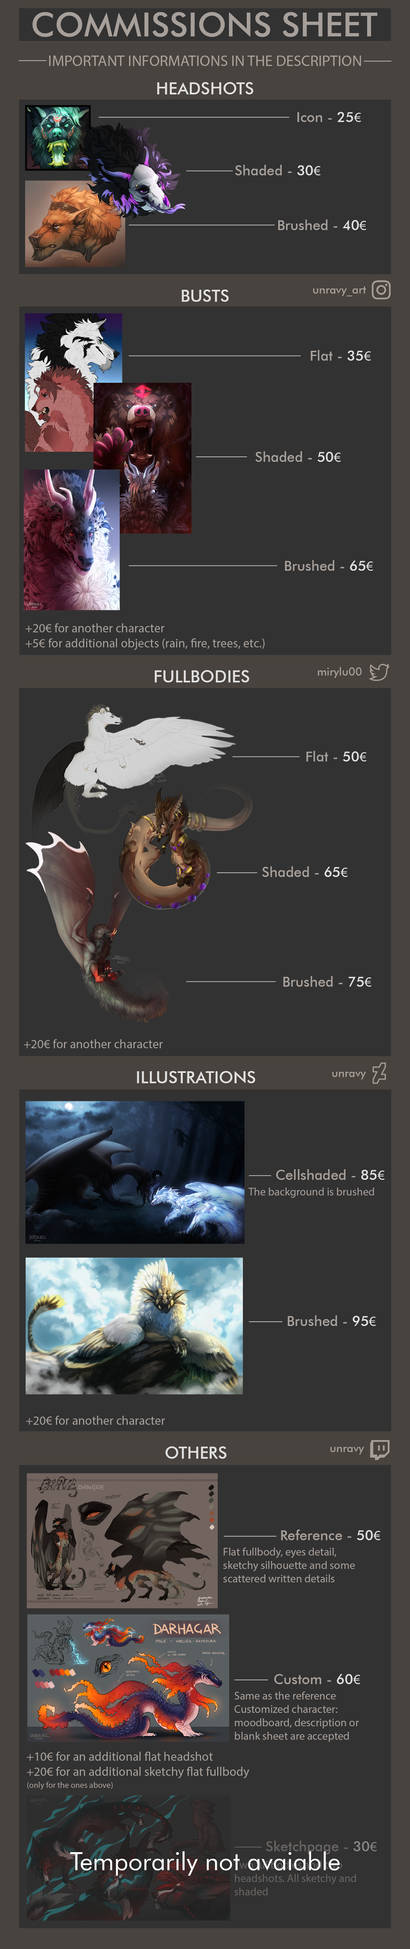 COMMISSIONS INFOs - CLOSED